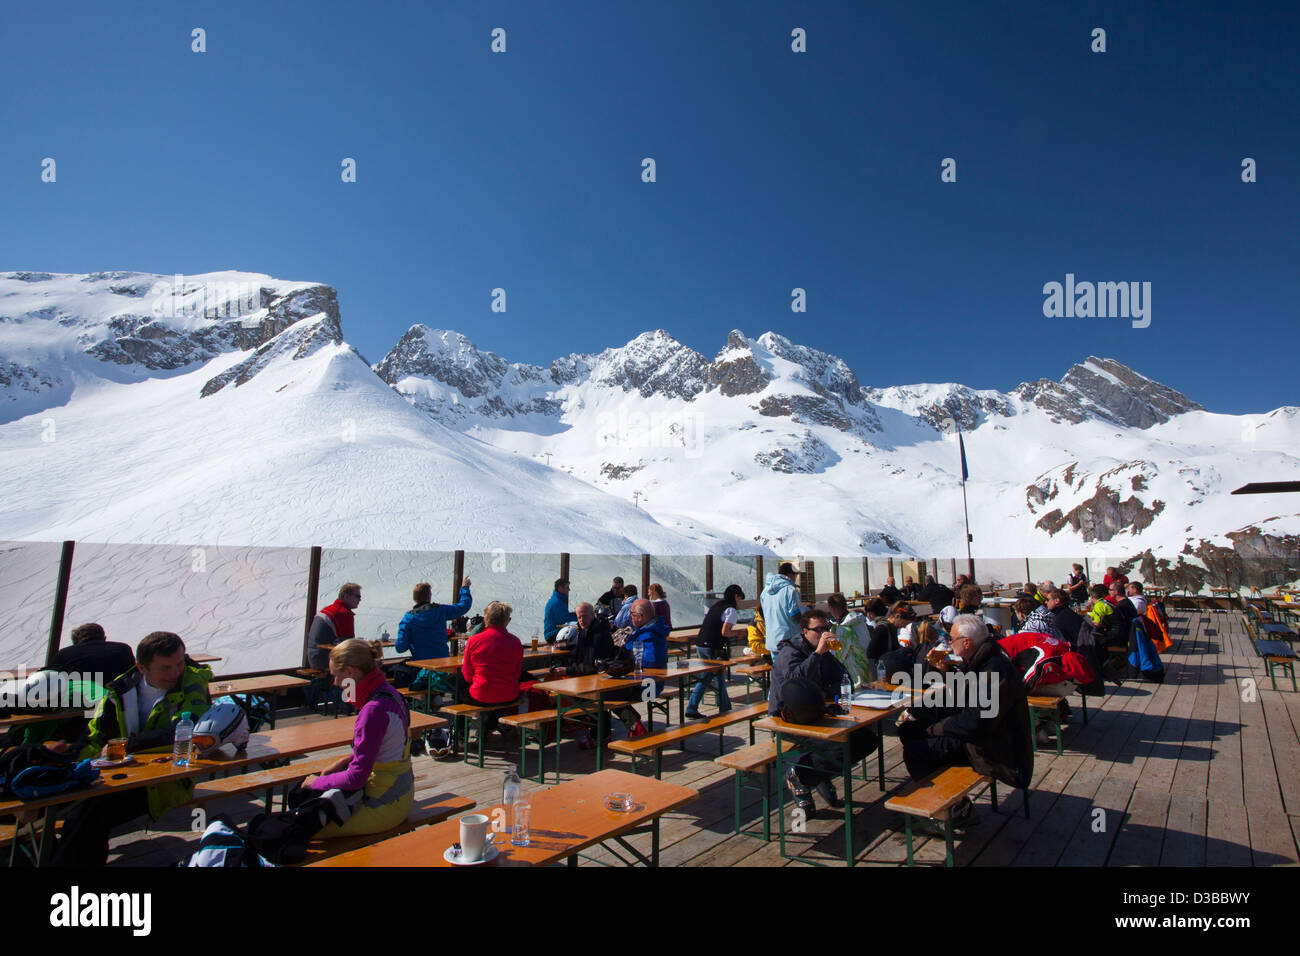 Skiers having lunch on the terrace of a mountain restaurant above Zurs, Arlberg, Austria. - Stock Image